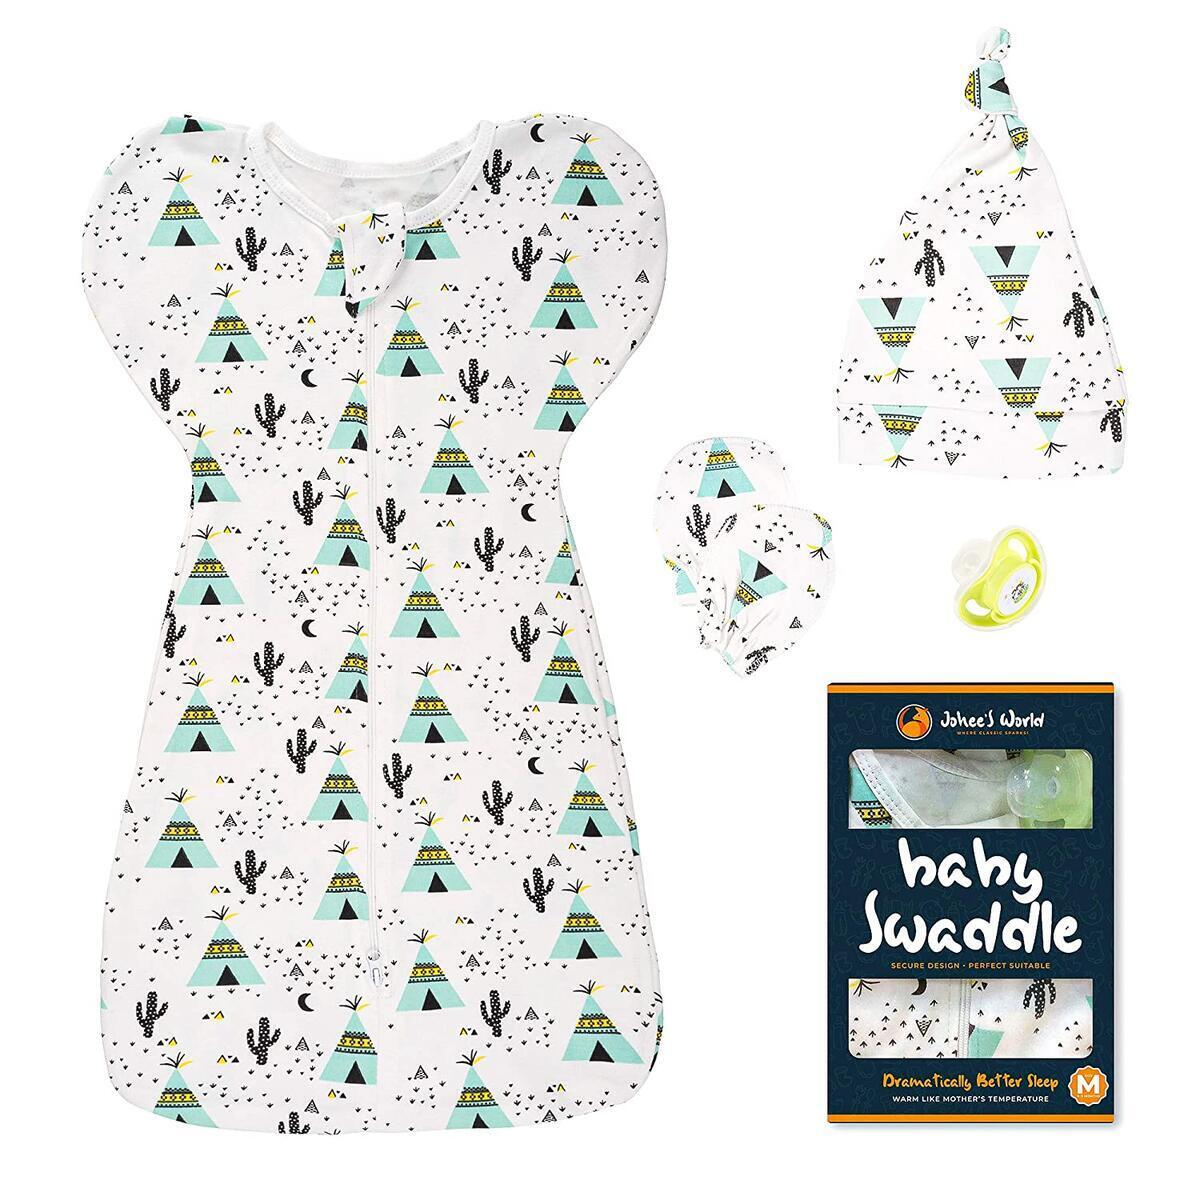 Swaddle (Green, M) 5pc. Cotton Swaddle Blanket Set with Baby Hand Mittens, Hat, Pacifier - Self-Soothing Newborn Infant Snug Fit Sleep Sack Wrap Calms Startle Reflex, Improves Sleep (0-3 Months)